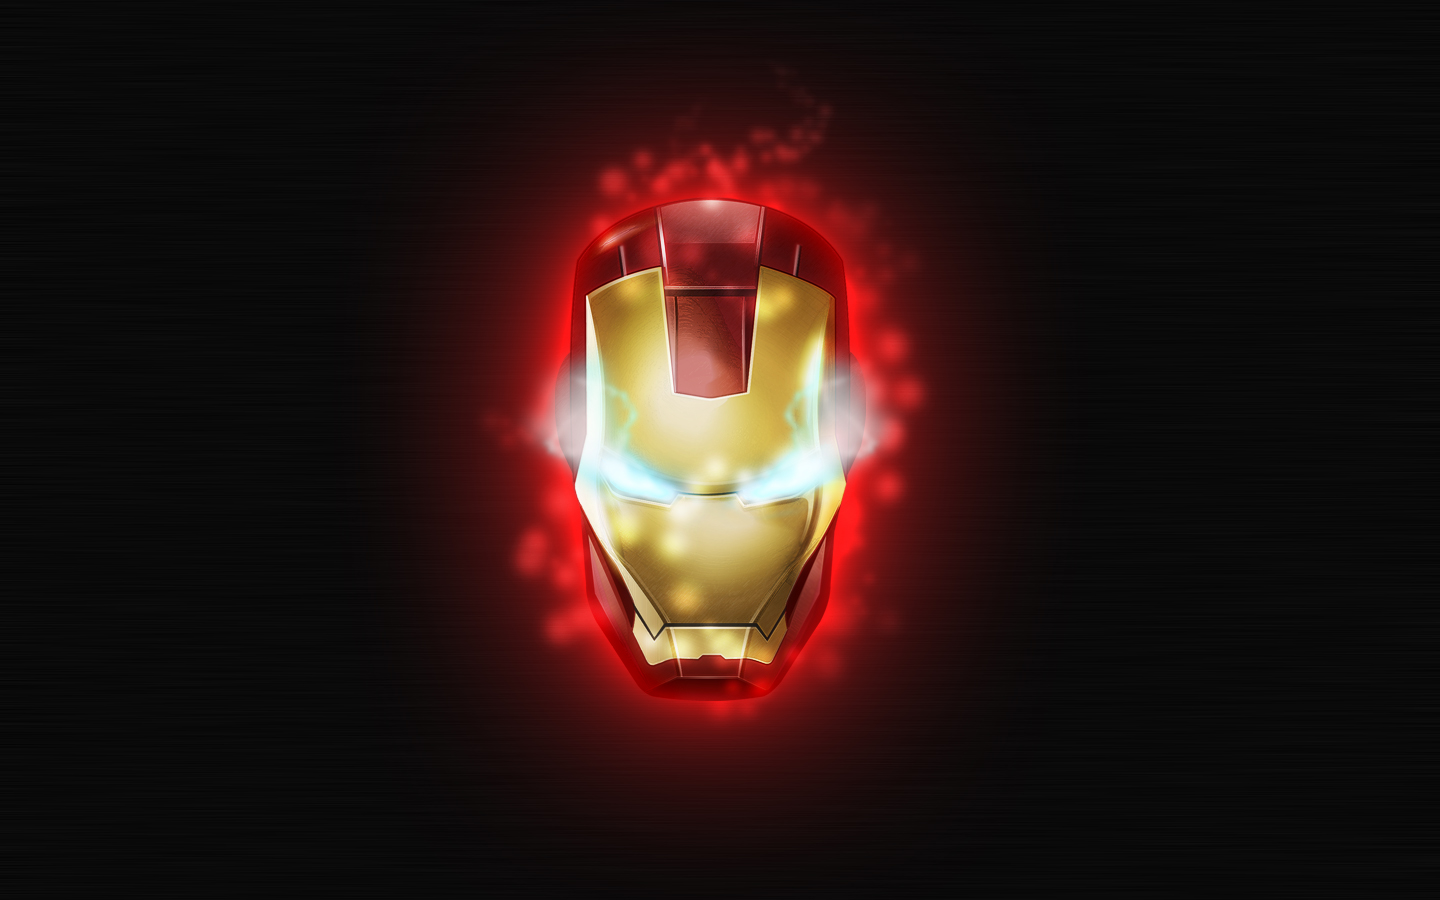 esther castillo iron man iron man 2 wallpaper film kino 1440x900